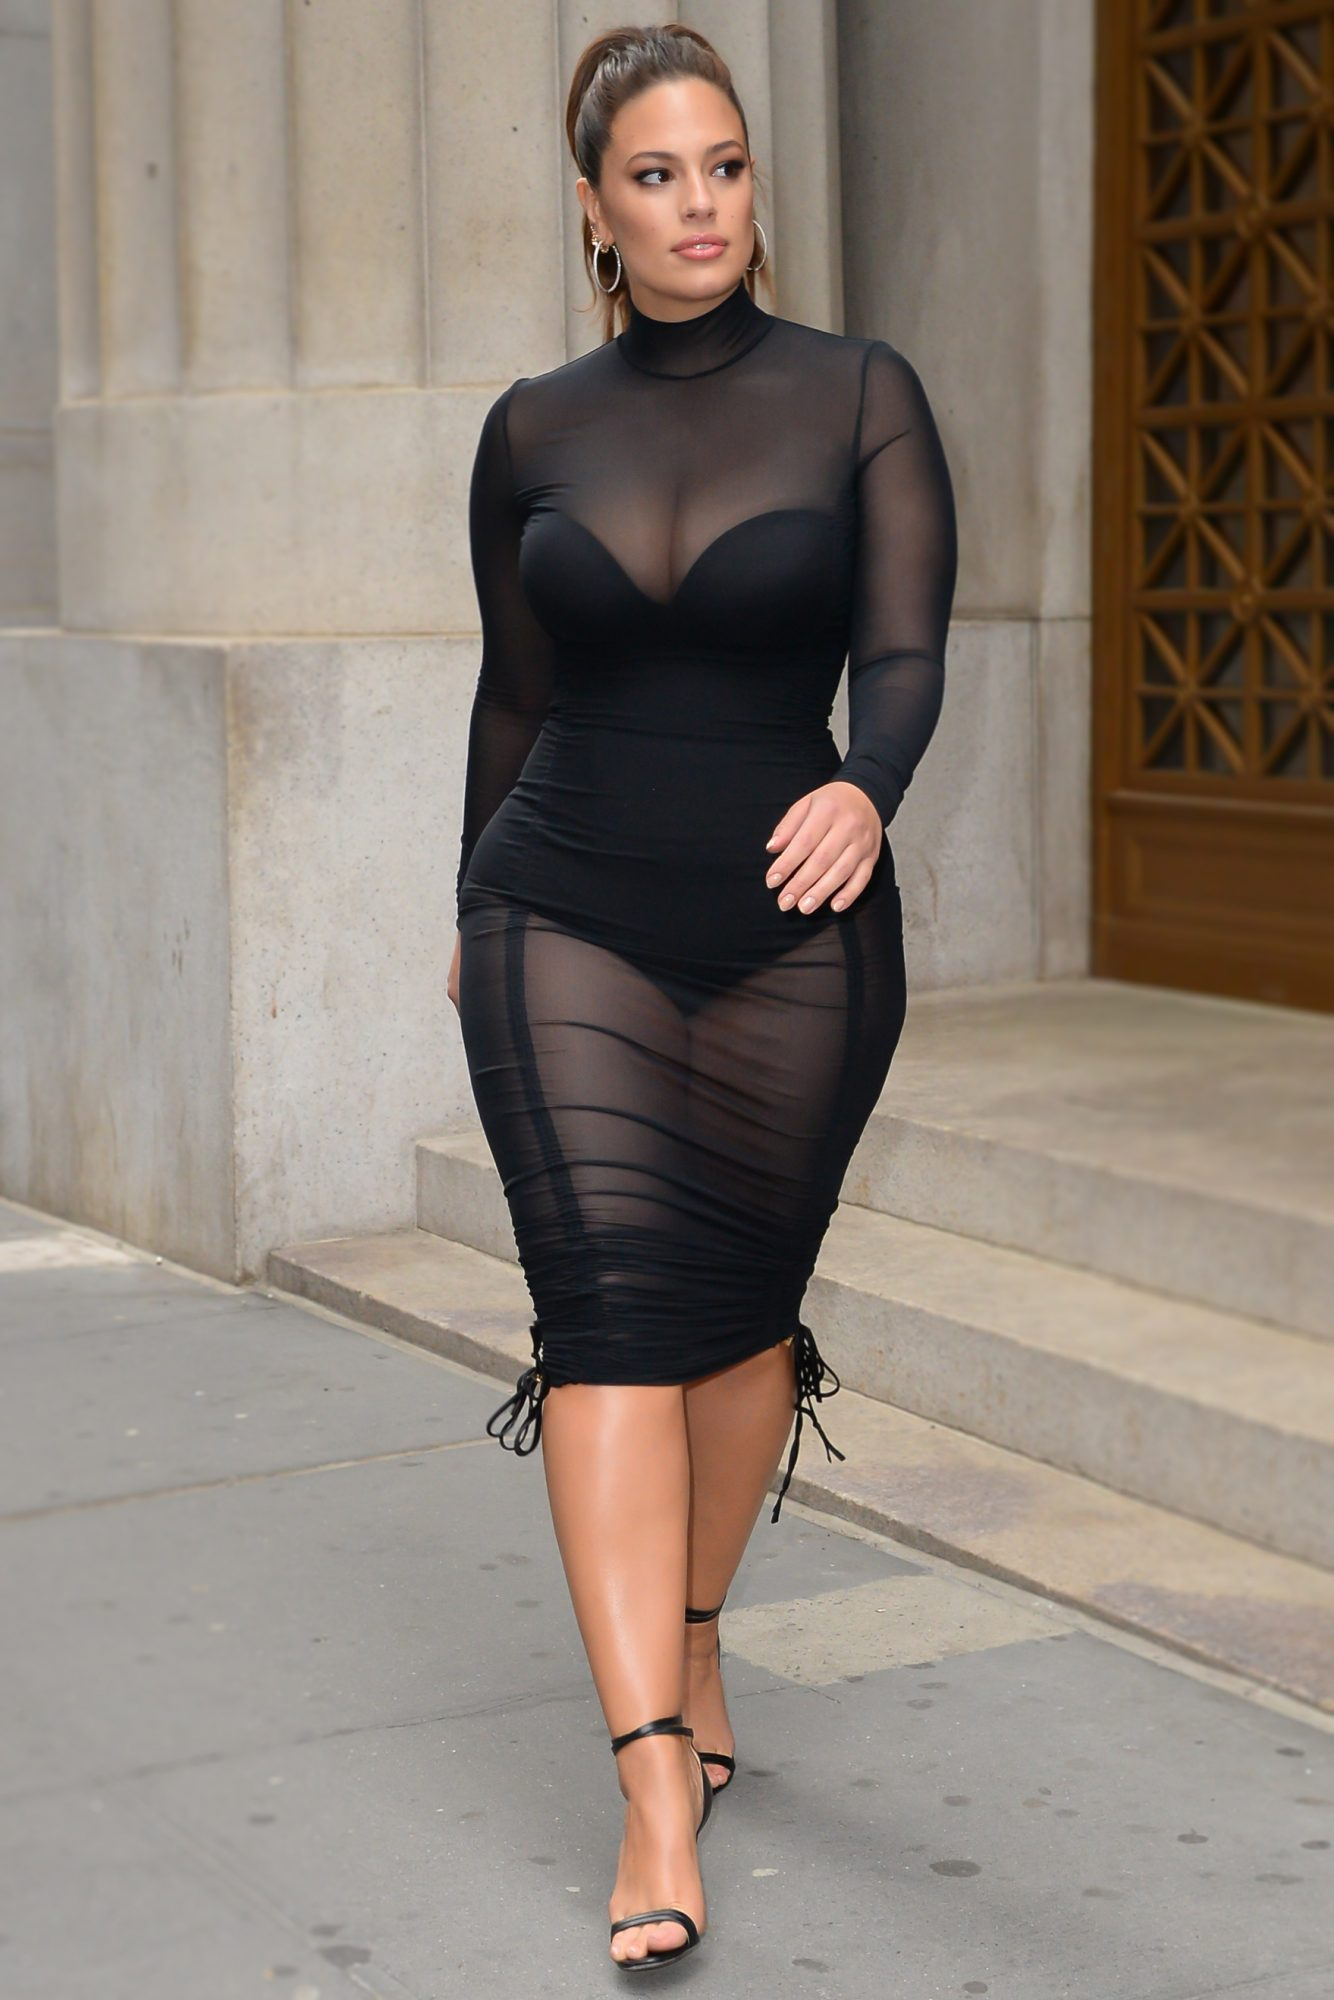 Fitted Clothes Are Unflattering If You're Plus-Size